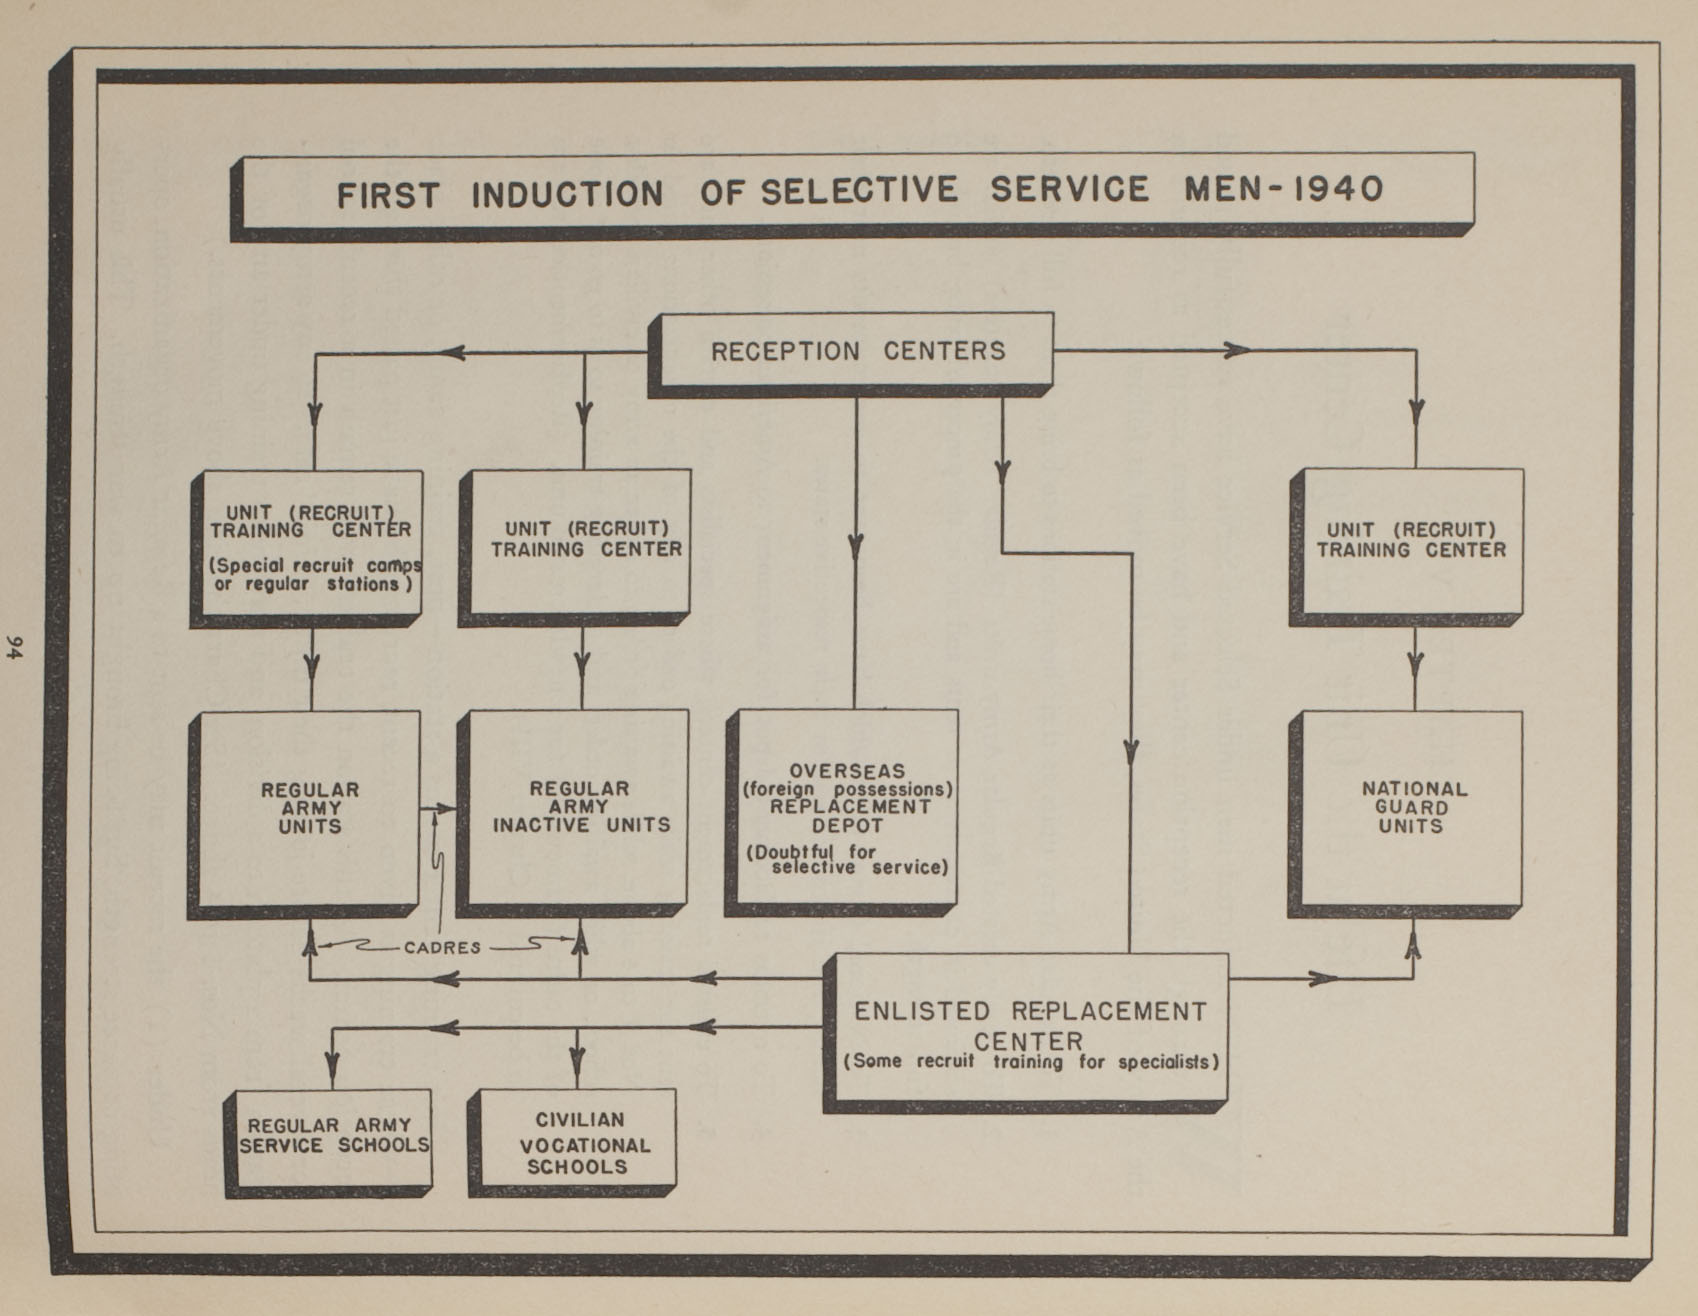 Flow chart of first induction of selective service men - 1940